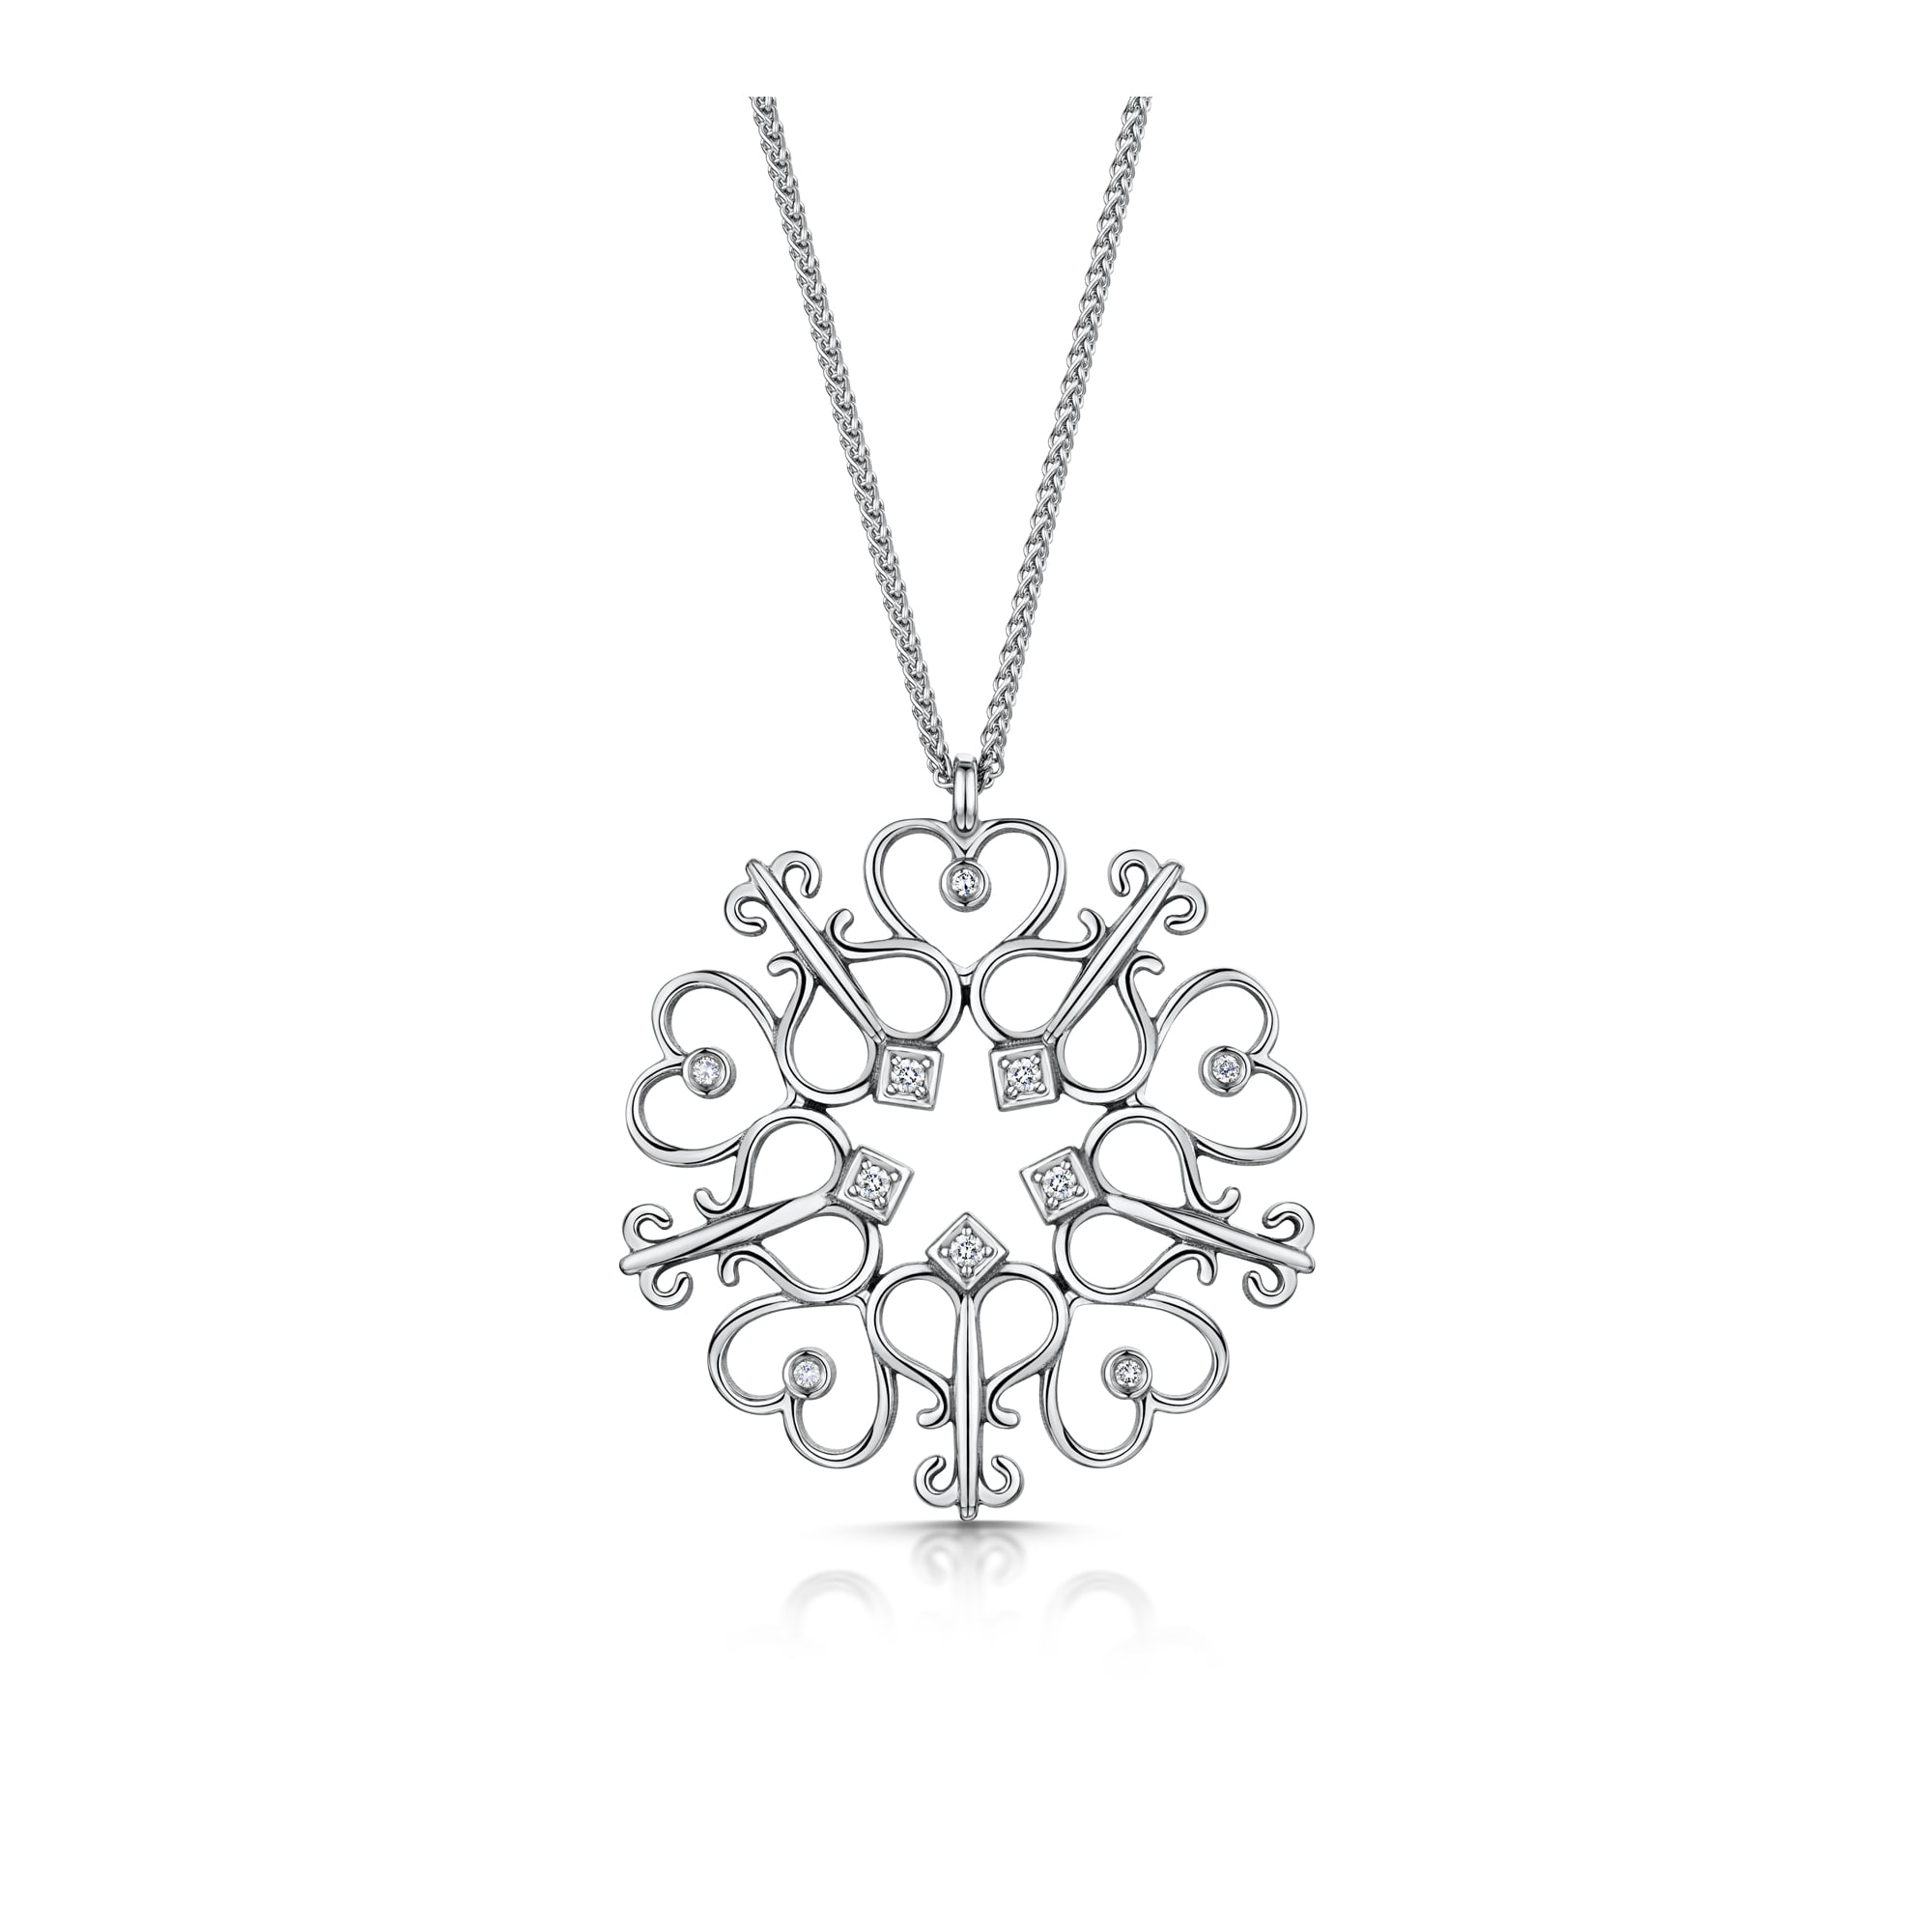 2000x2000 18ct White Gold Key And Heart Diamond Necklace